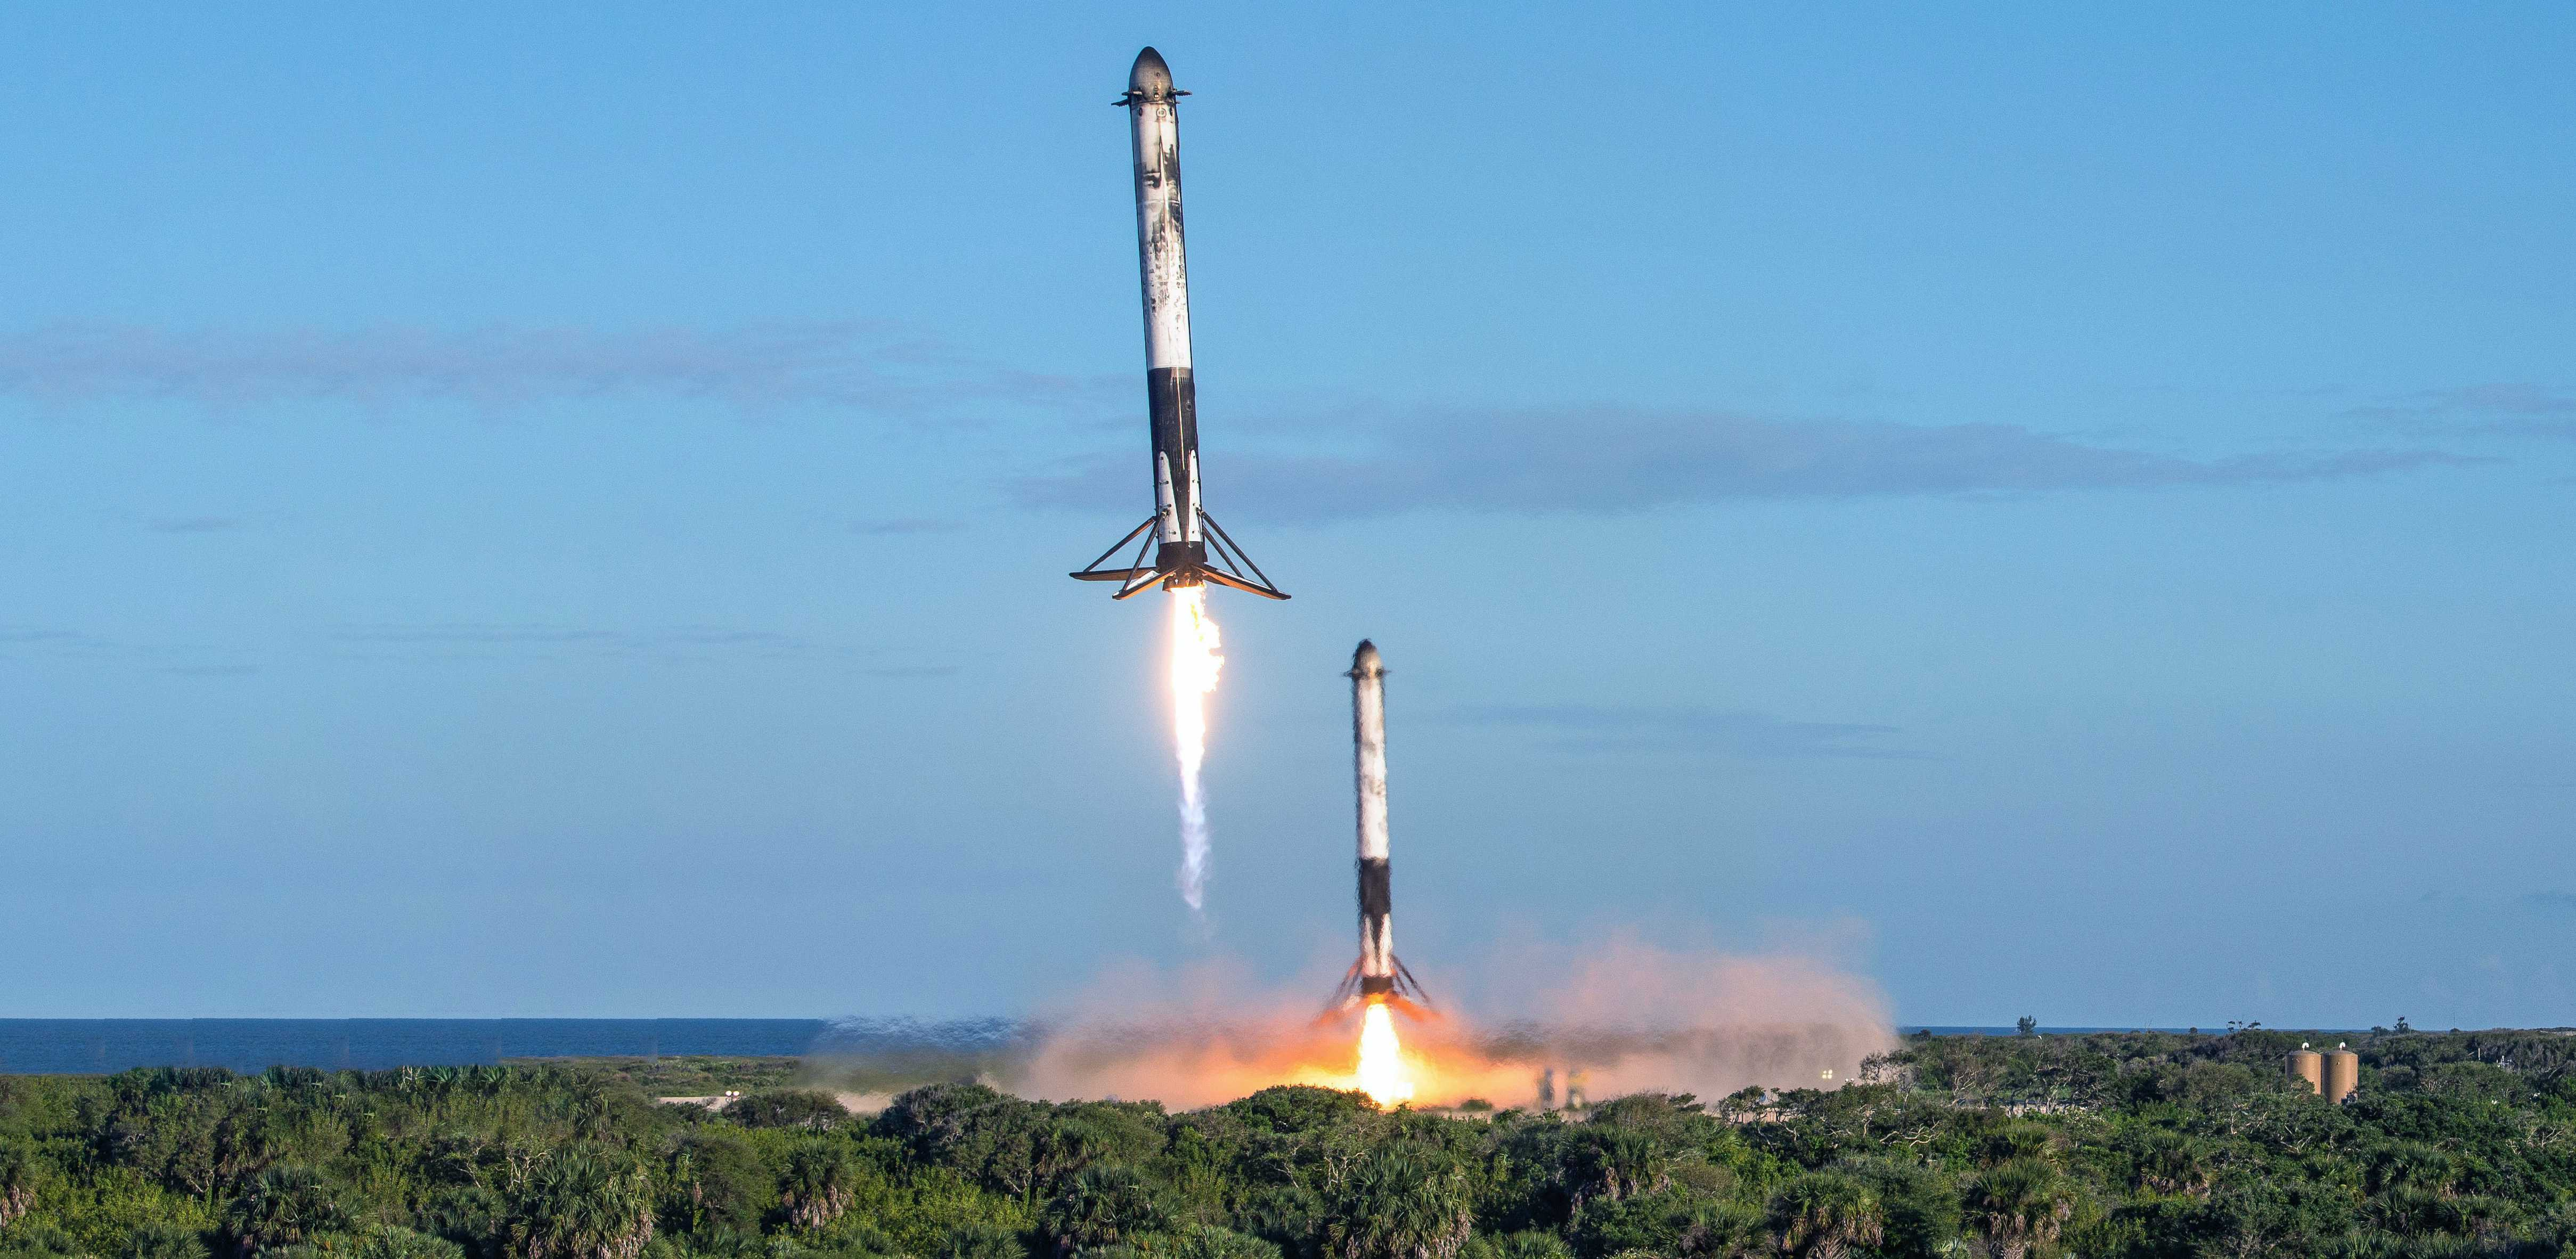 SpaceX's flawless Falcon Heavy Block 5 launch and landing ...